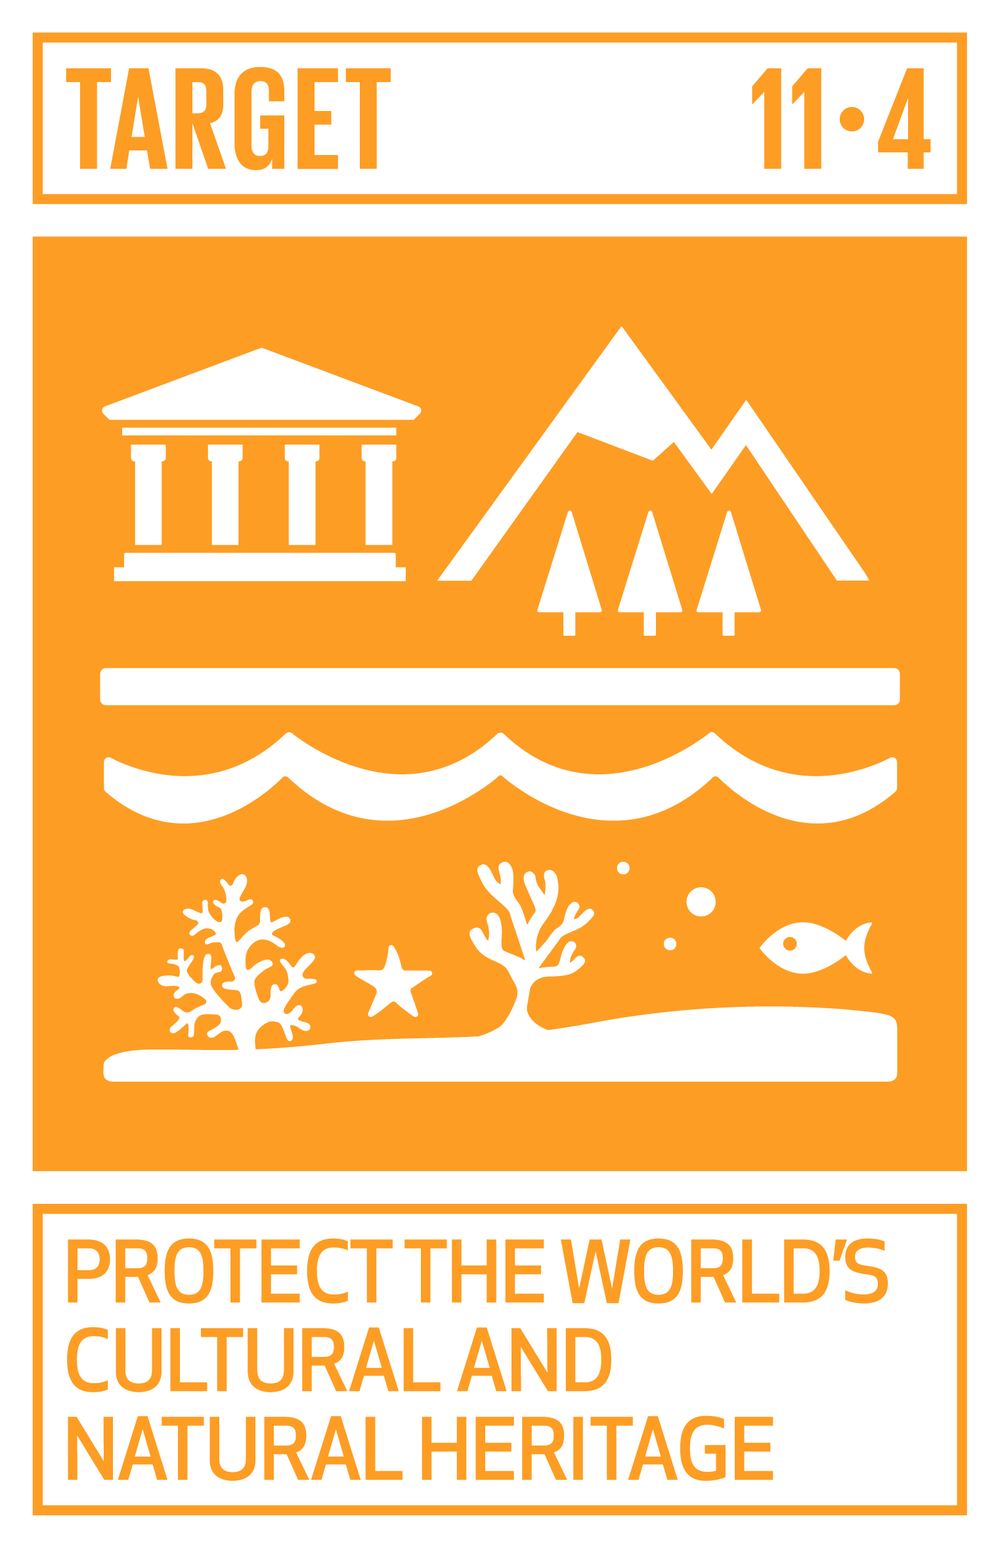 Strengthen efforts to protect and safeguard the world's cultural and natural heritage.   INDICATOR    11.4.1  Total expenditure (public and private) per capita spent on the preservation, protection and conservation of all cultural and natural heritage, by type of heritage (cultural, natural, mixed and World Heritage Centre designation), level of government (national, regional and local/municipal), type of expenditure (operating expenditure/investment) and type of private funding (donations in kind, private non-profit sector and sponsorship)